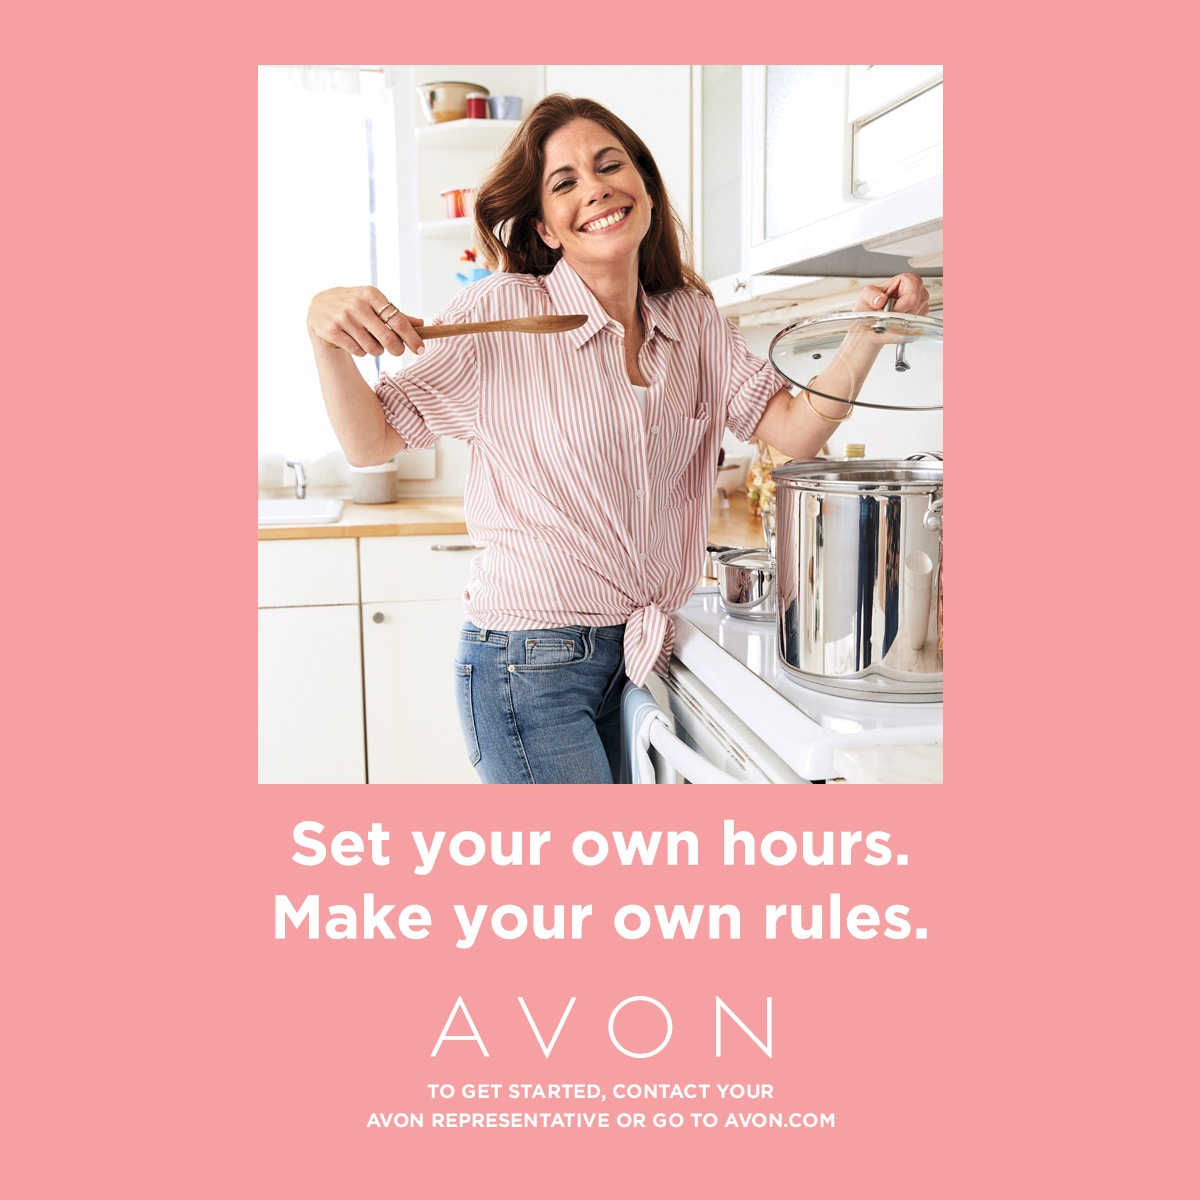 Sign up for FREE now through March 31st! Don't miss out on this amazing opportunity! If you have any questions feel free to message me!  http://go.youravon.com/3jn3cxpic.twitter.com/hjPNybjnYT